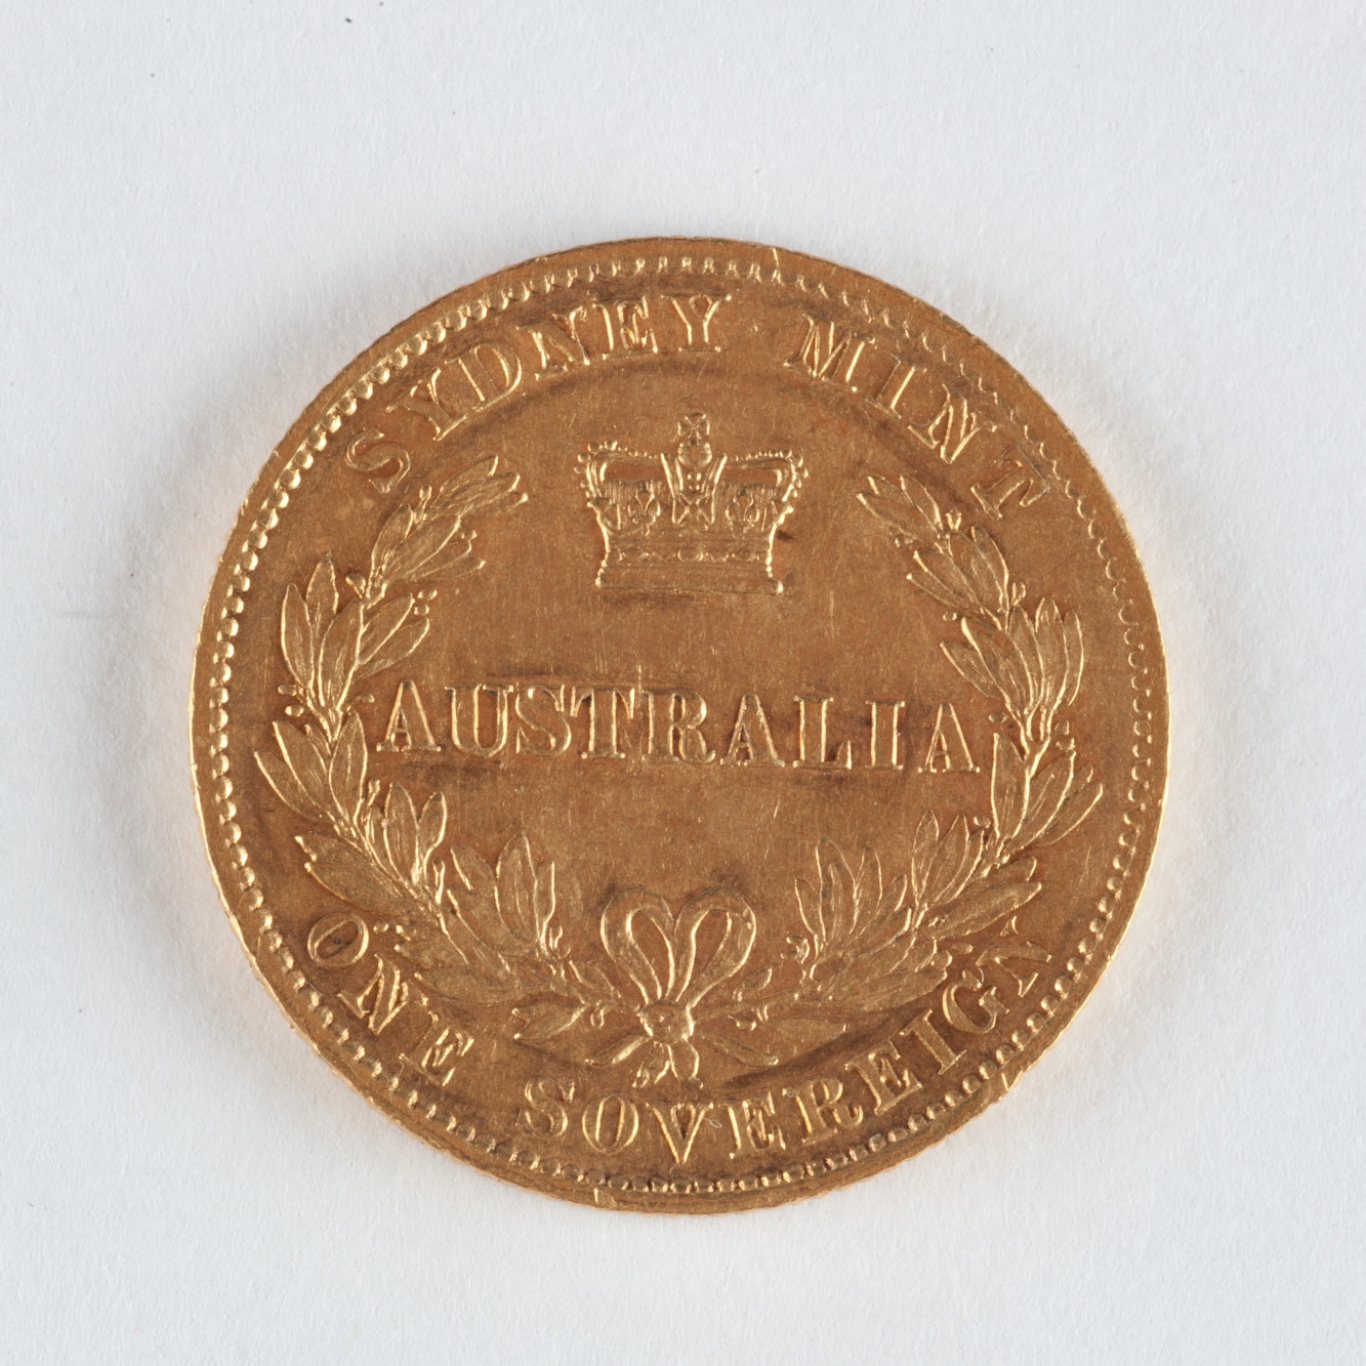 Reverse of gold coin.